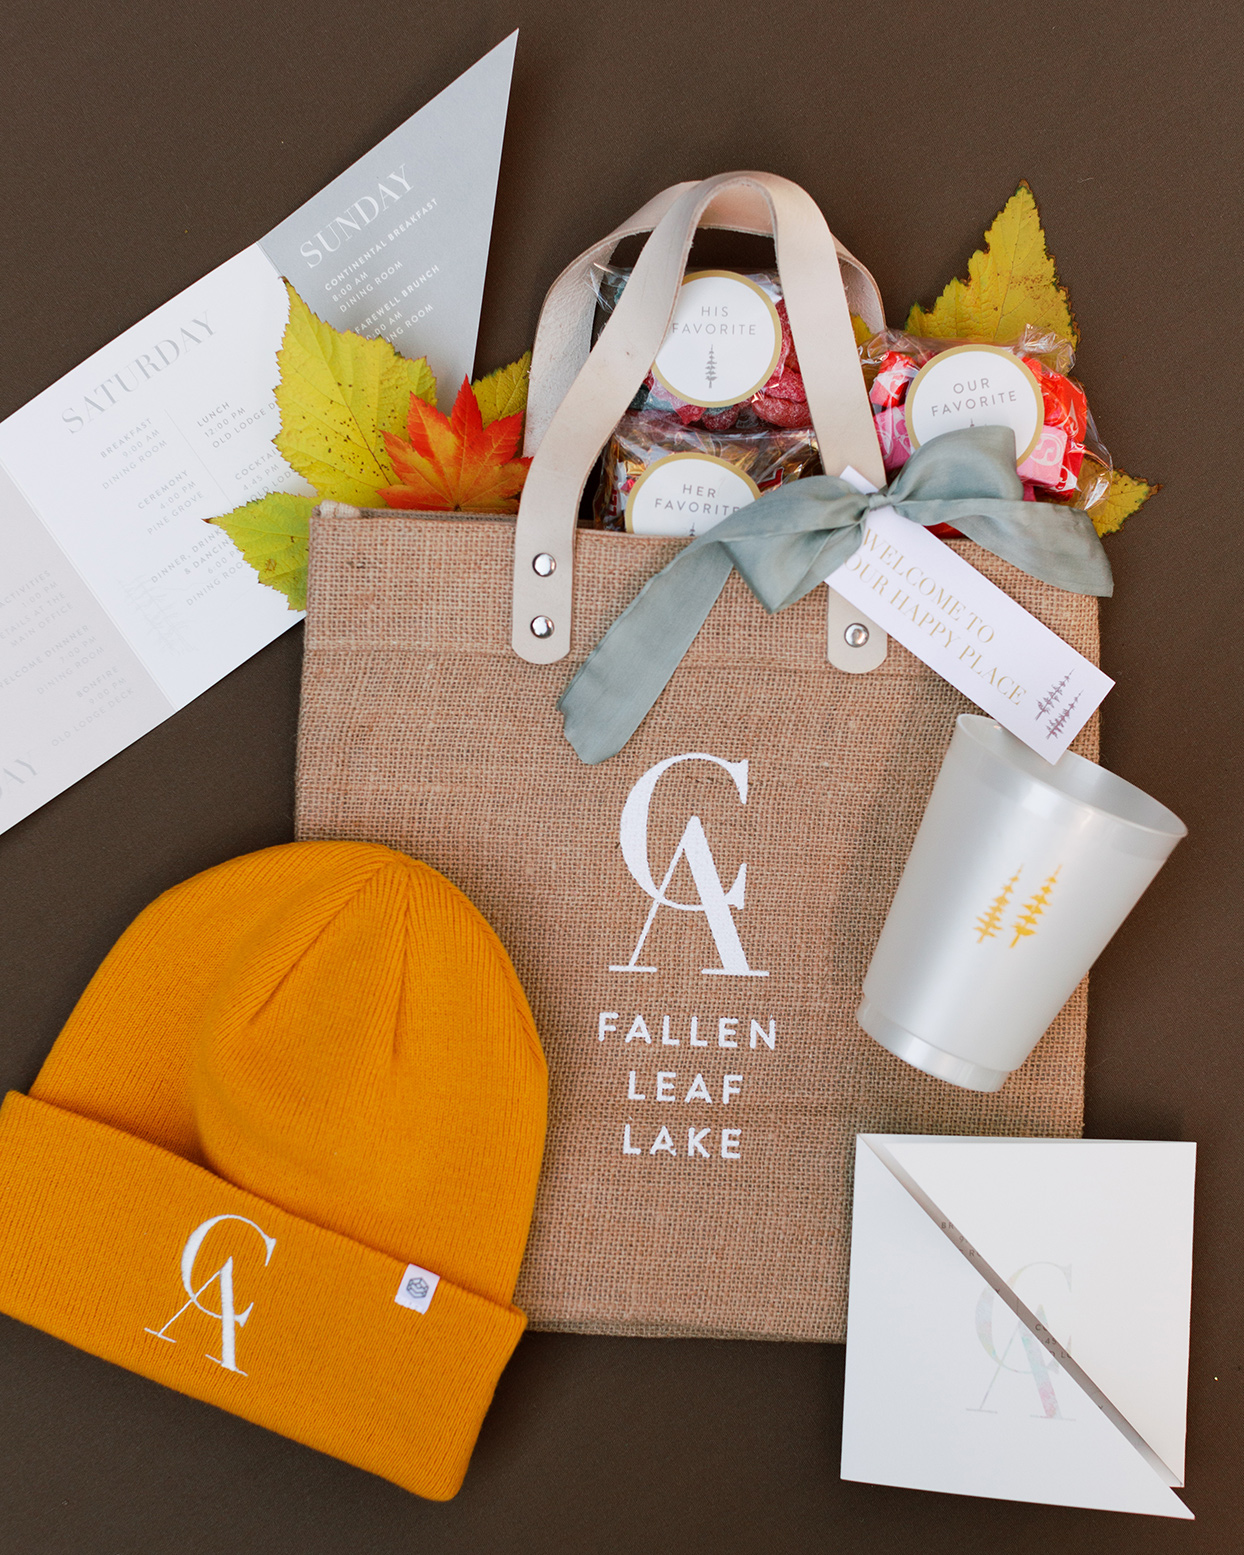 rustic welcome bags with candy, hat, cup and fall decor